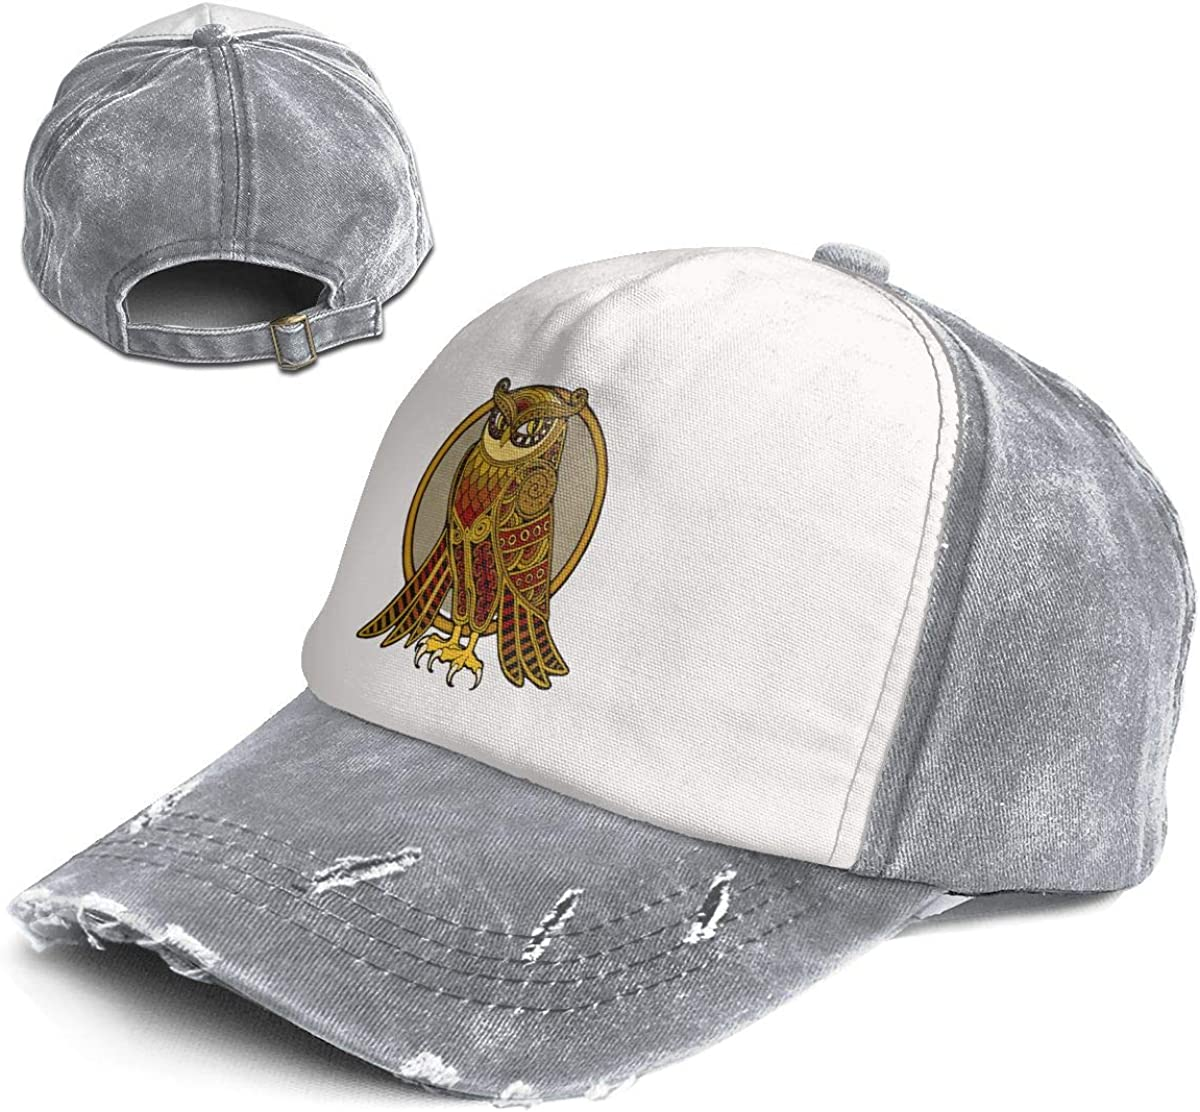 Owl Design Trend Printing Cowboy Hat Fashion Baseball Cap for Men and Women Black and White